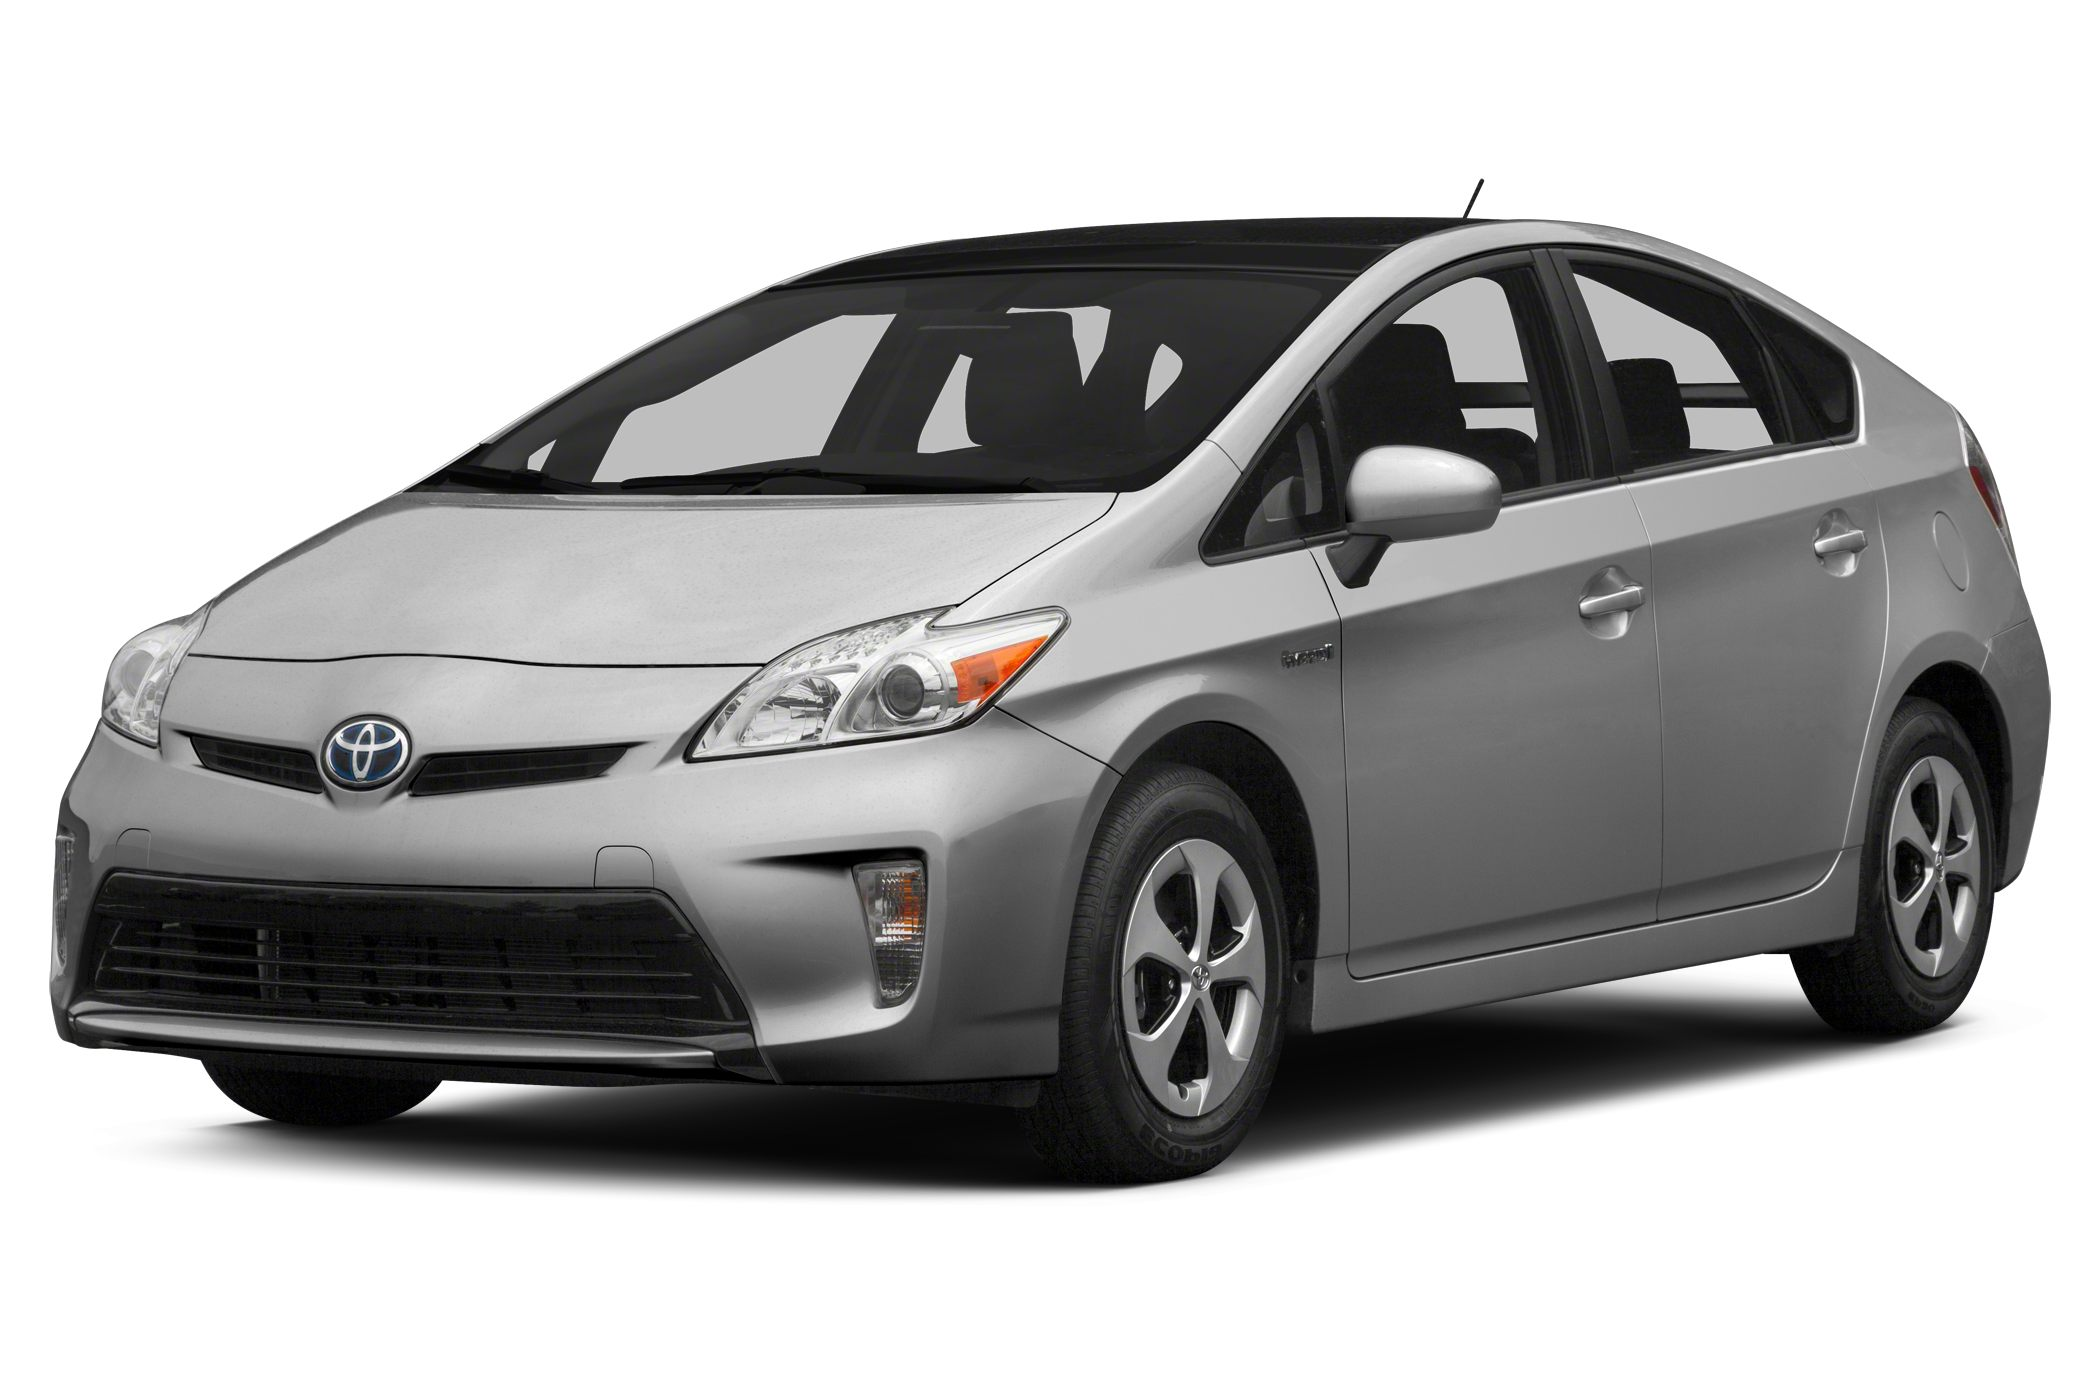 2013 Toyota Prius Five Menifee Murrieta Temecula Moreno Valley Perris come and get great value